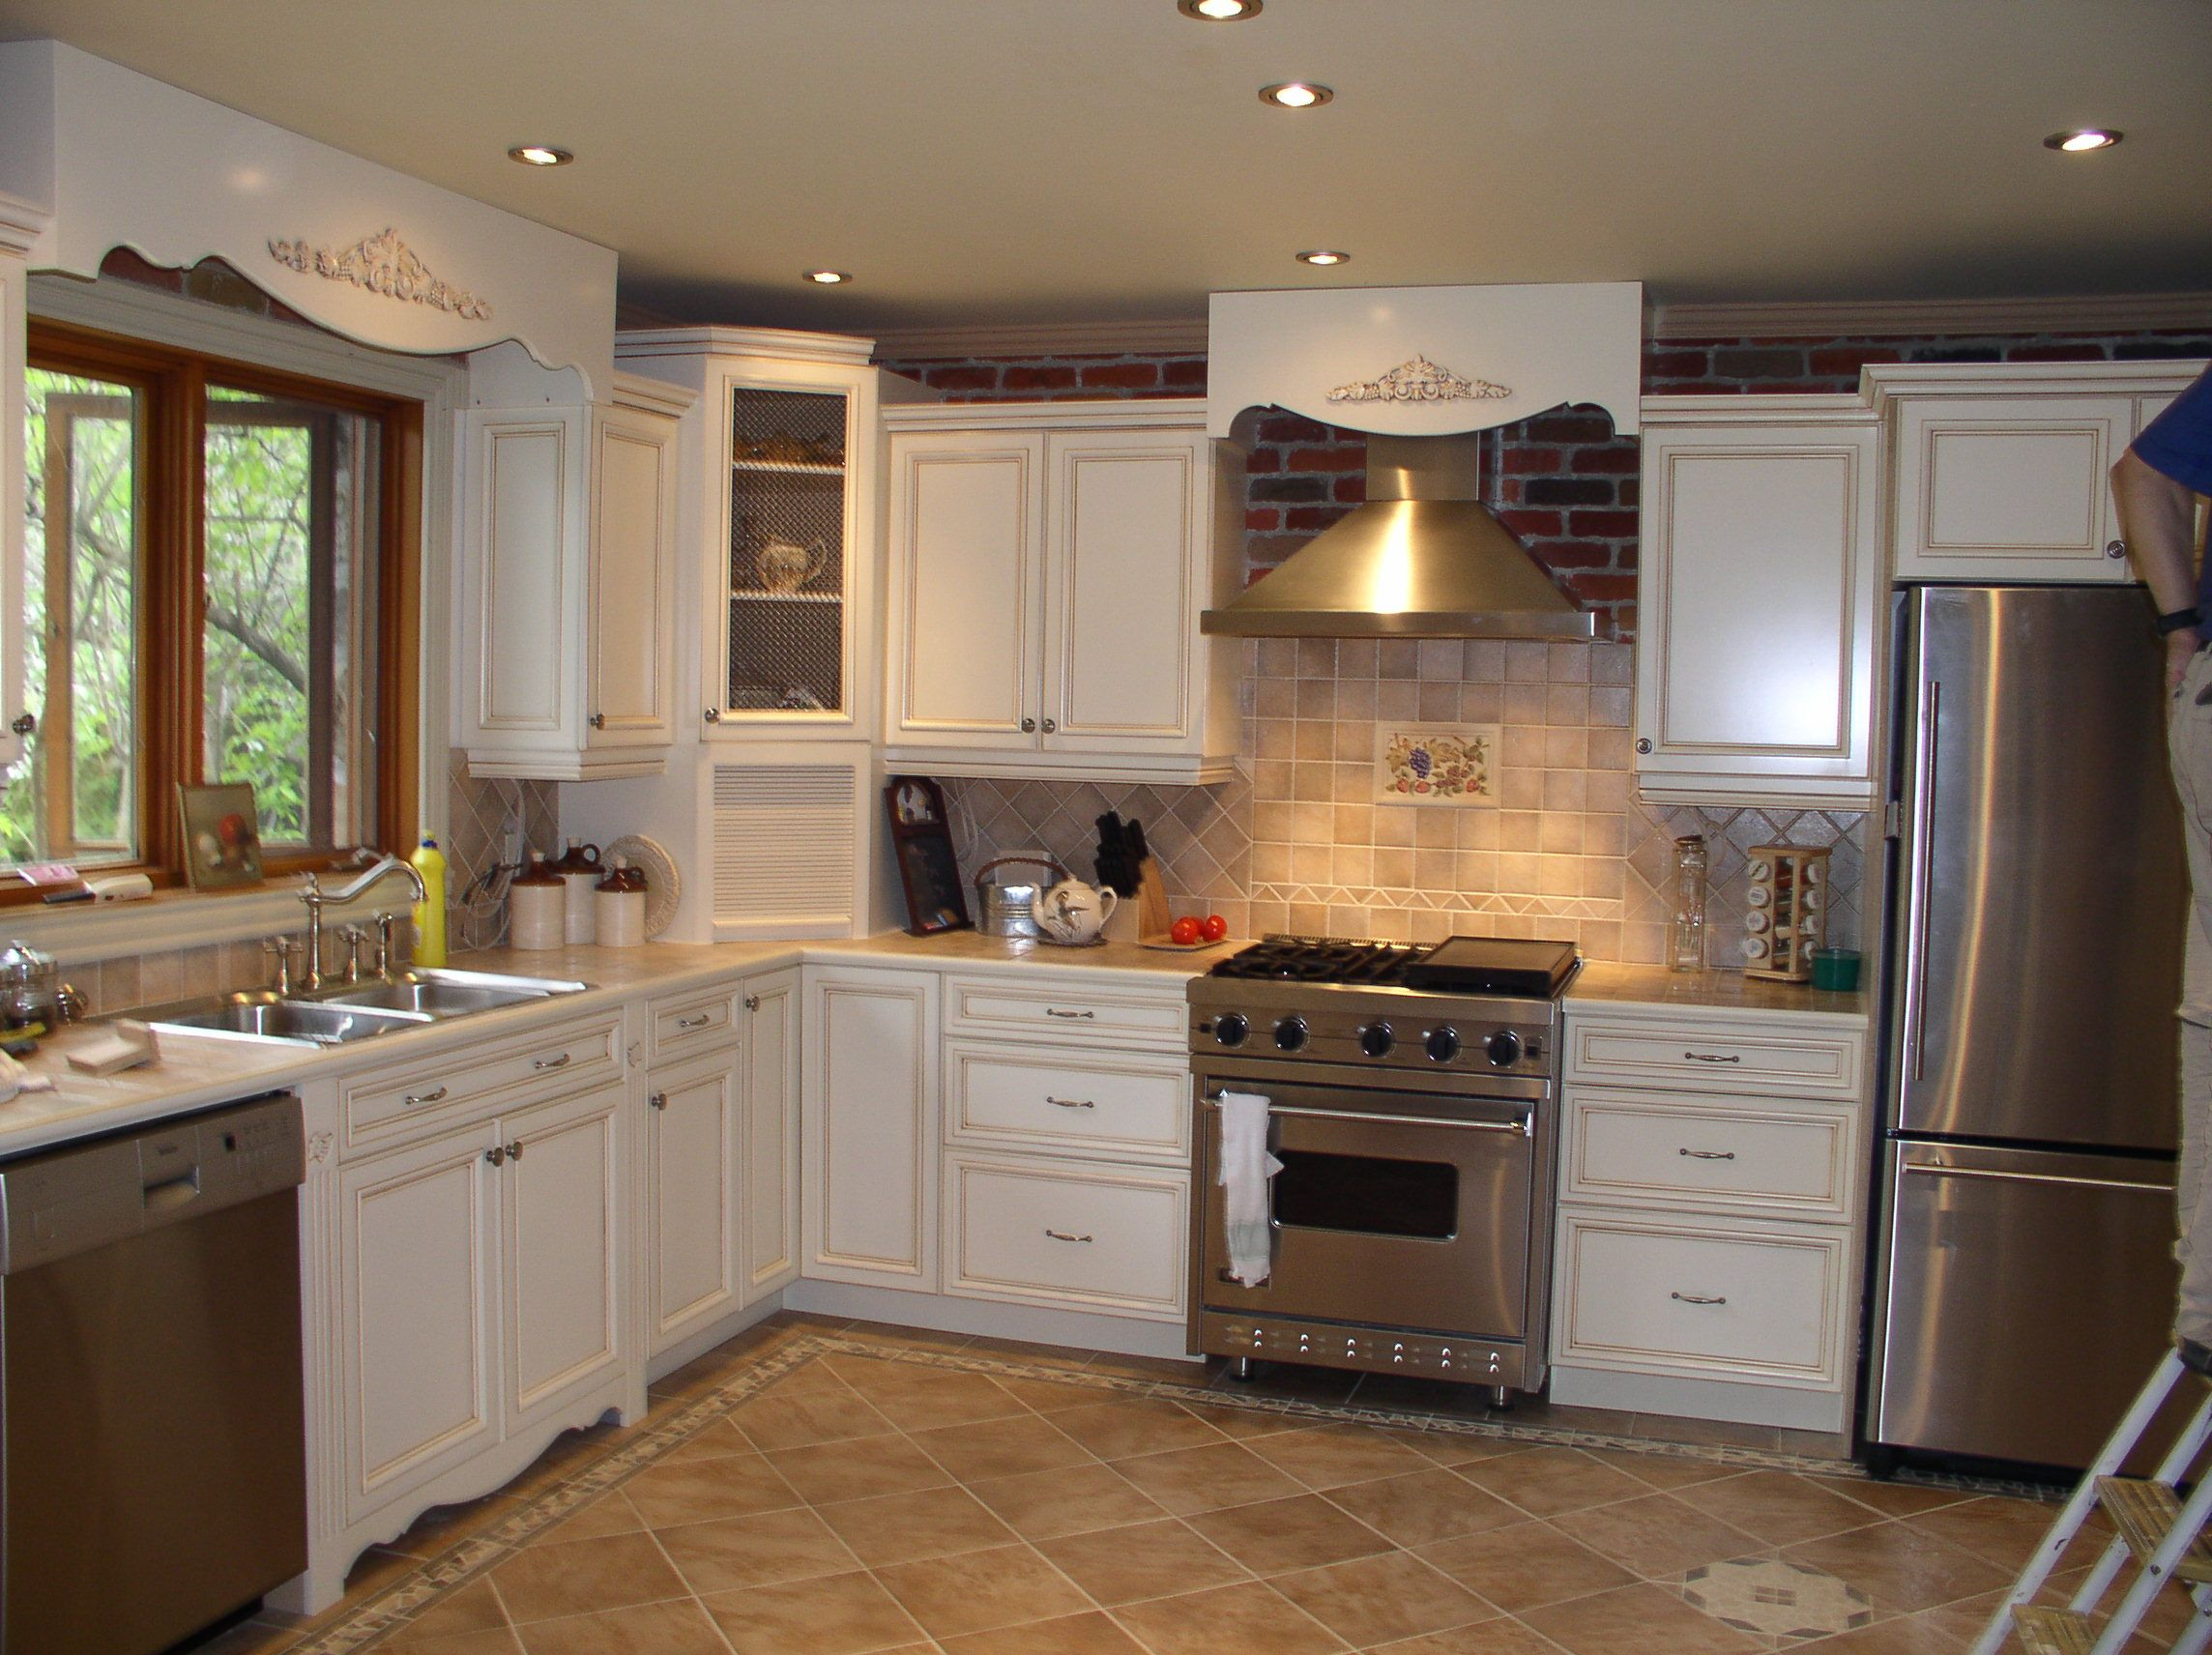 Merveilleux Kitchen+Ideas | Kitchen Remodeling Ideas Home Improvement Remodeling Kitchen  .